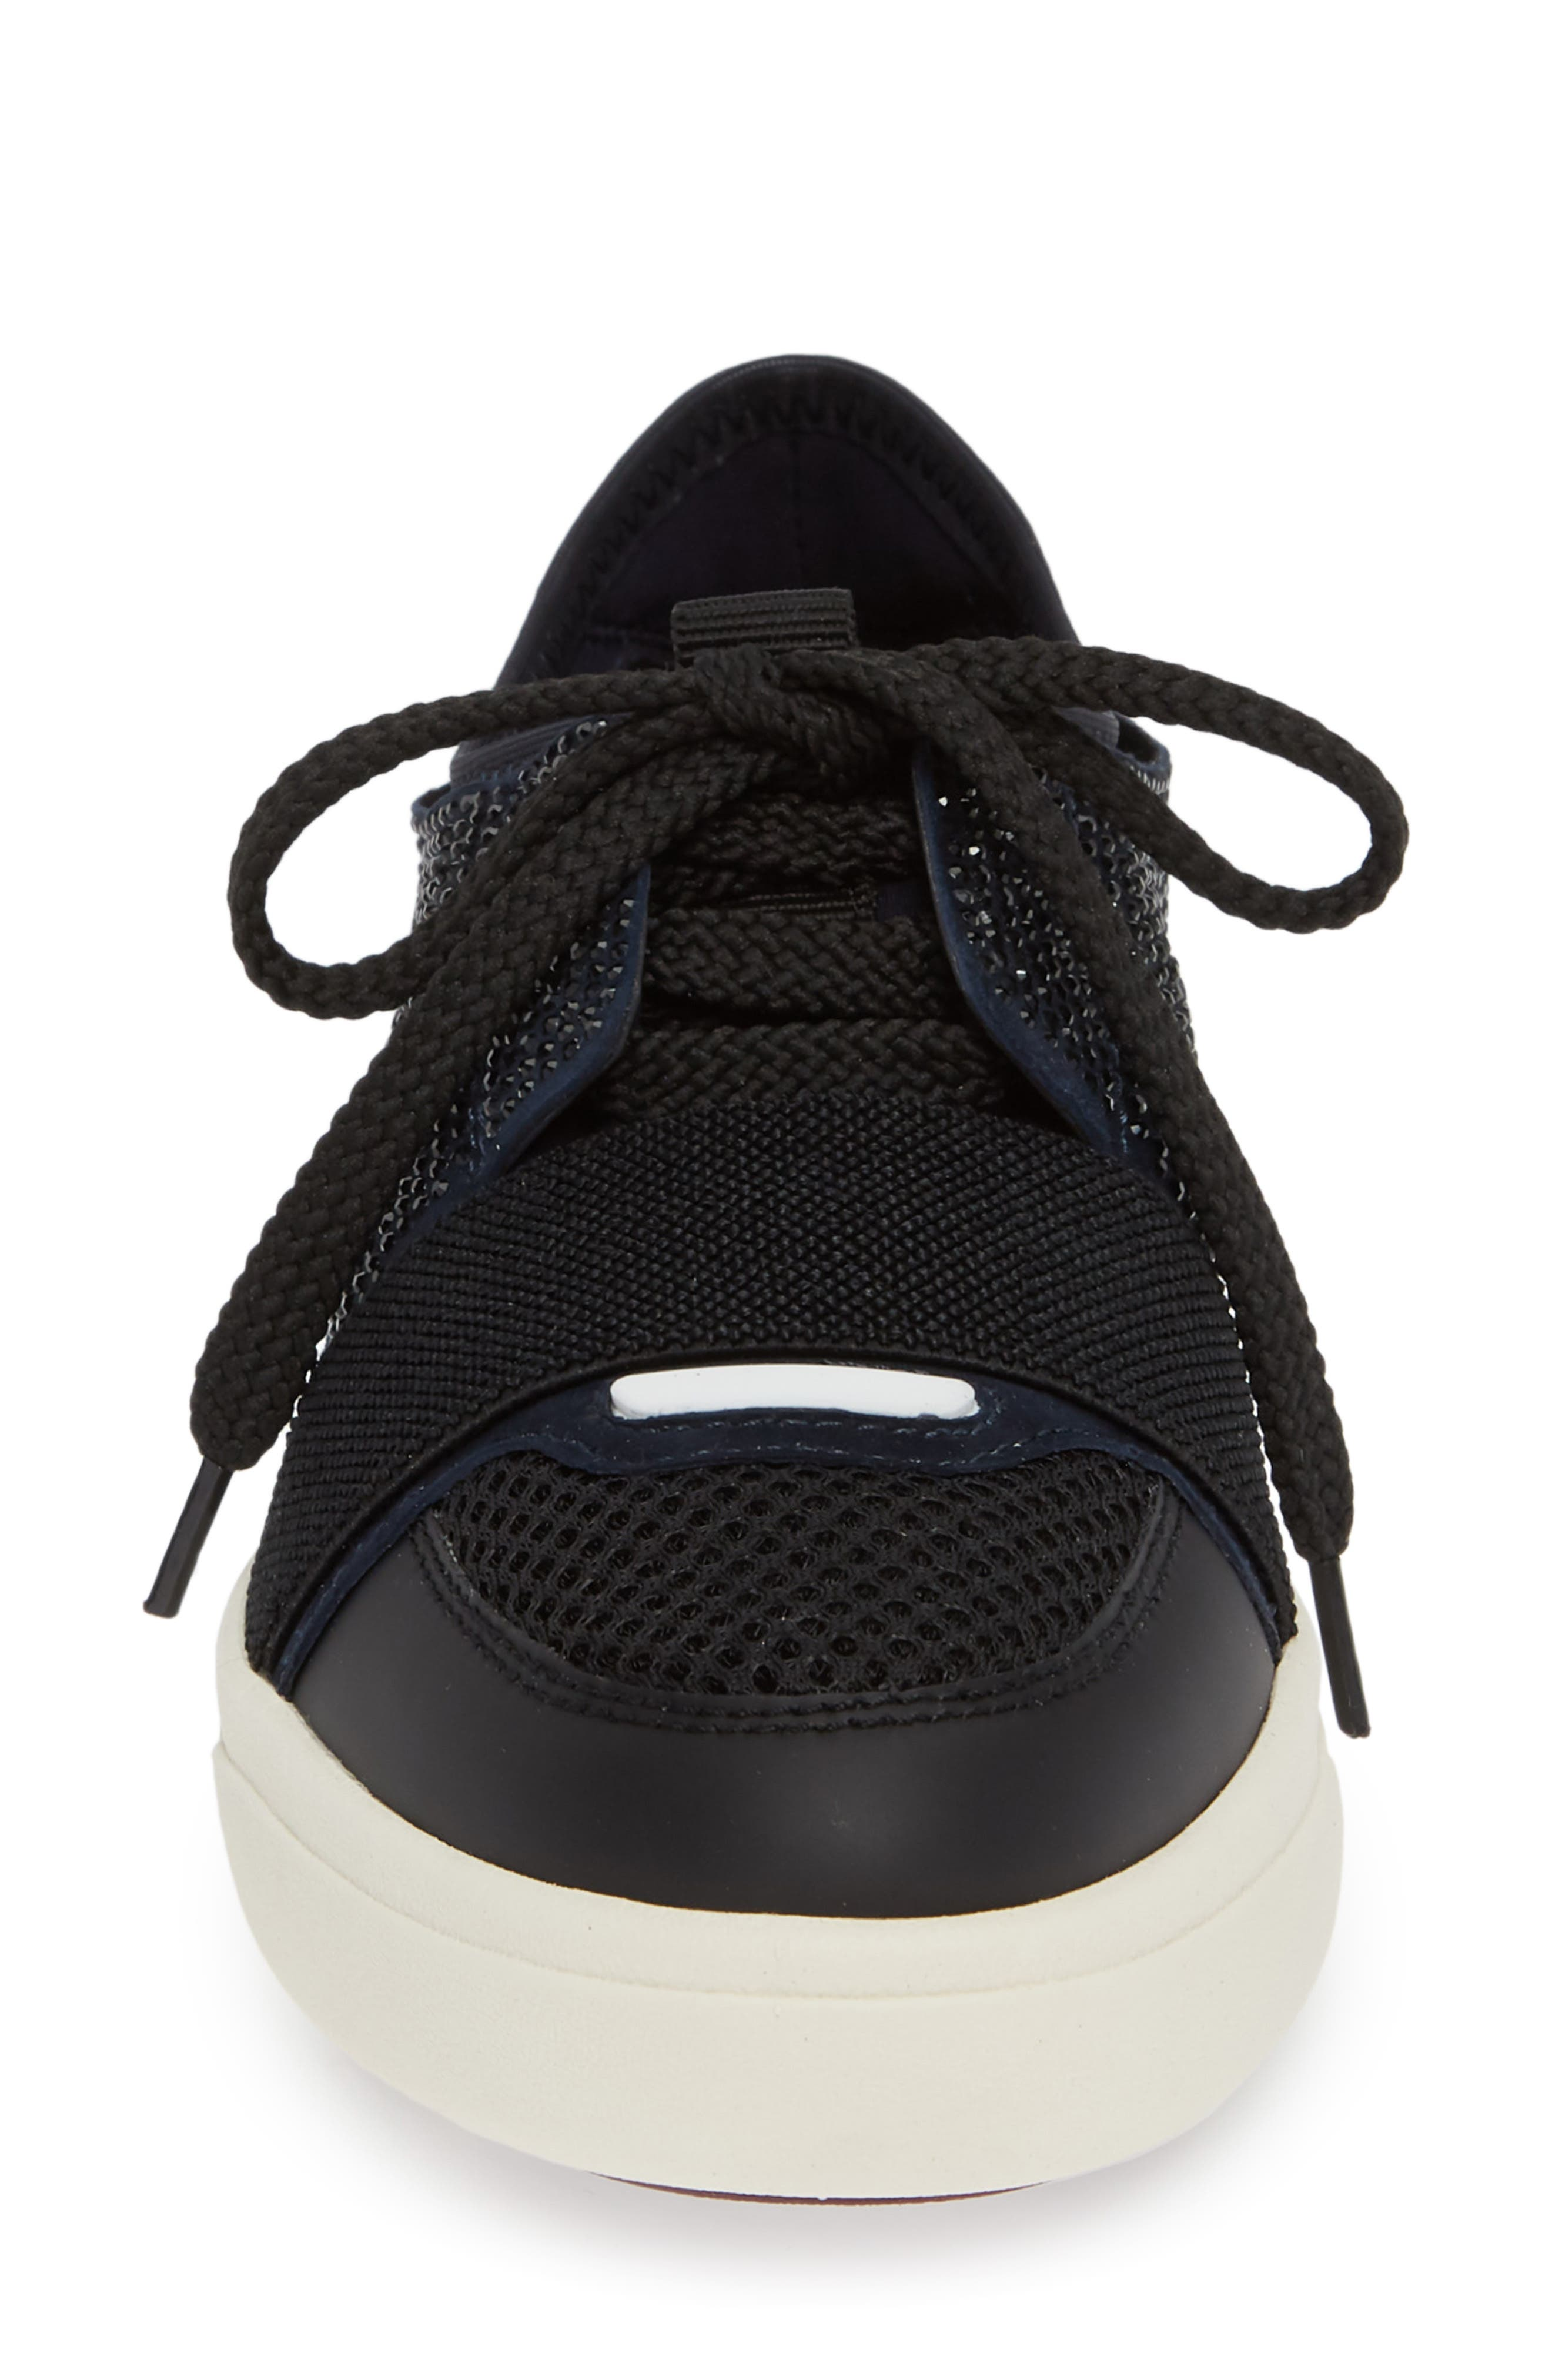 Onella Lace-Up Sneaker,                             Alternate thumbnail 4, color,                             BLACK/ NAVY/ GREY MULTI